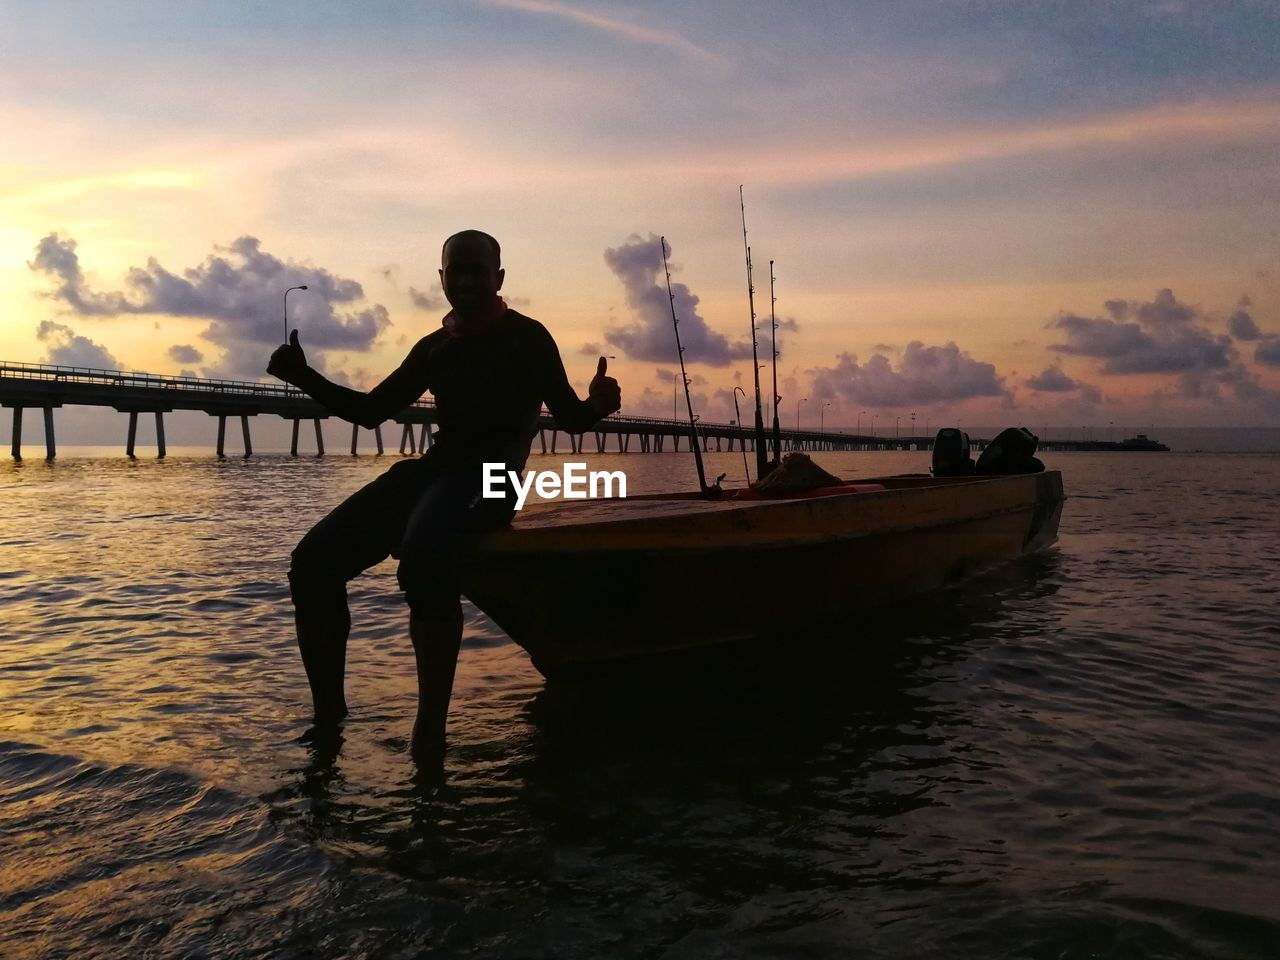 Silhouette man standing on boat in sea against sky during sunset